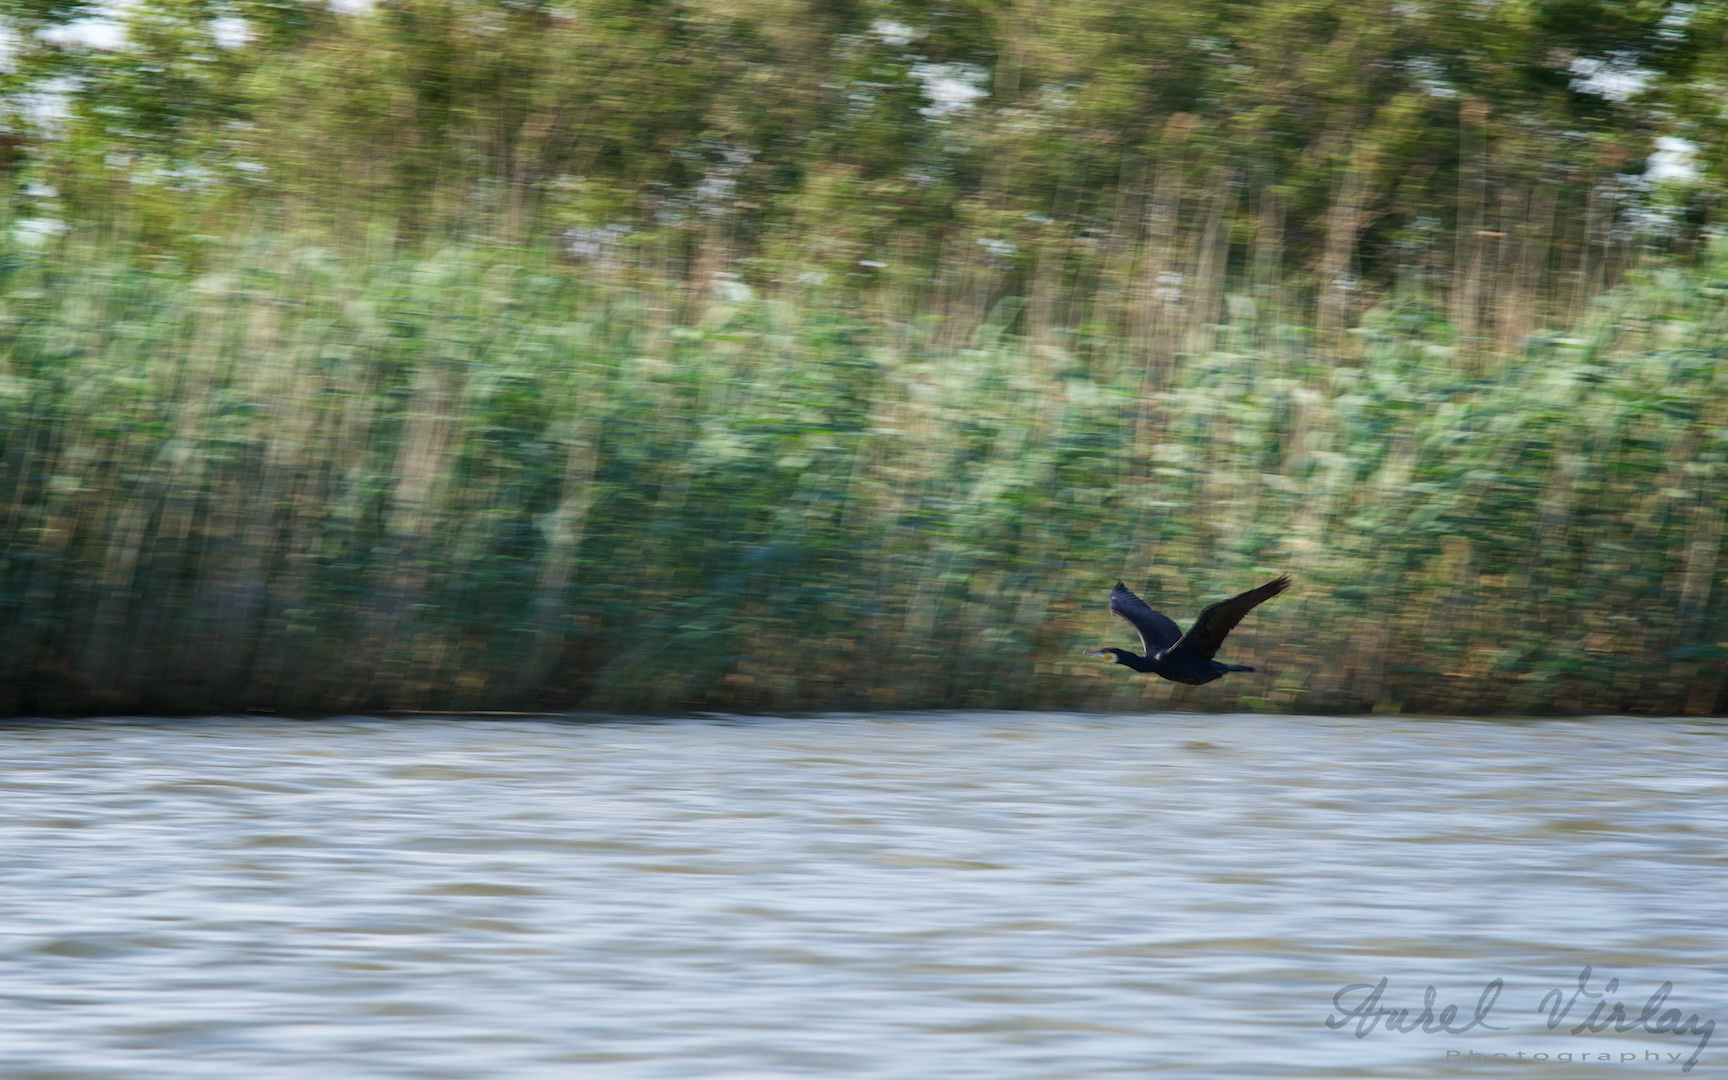 Our boat speed reached 70 km / h, and this bird cormorant had been overtook us and cut our way through the front of the boat!